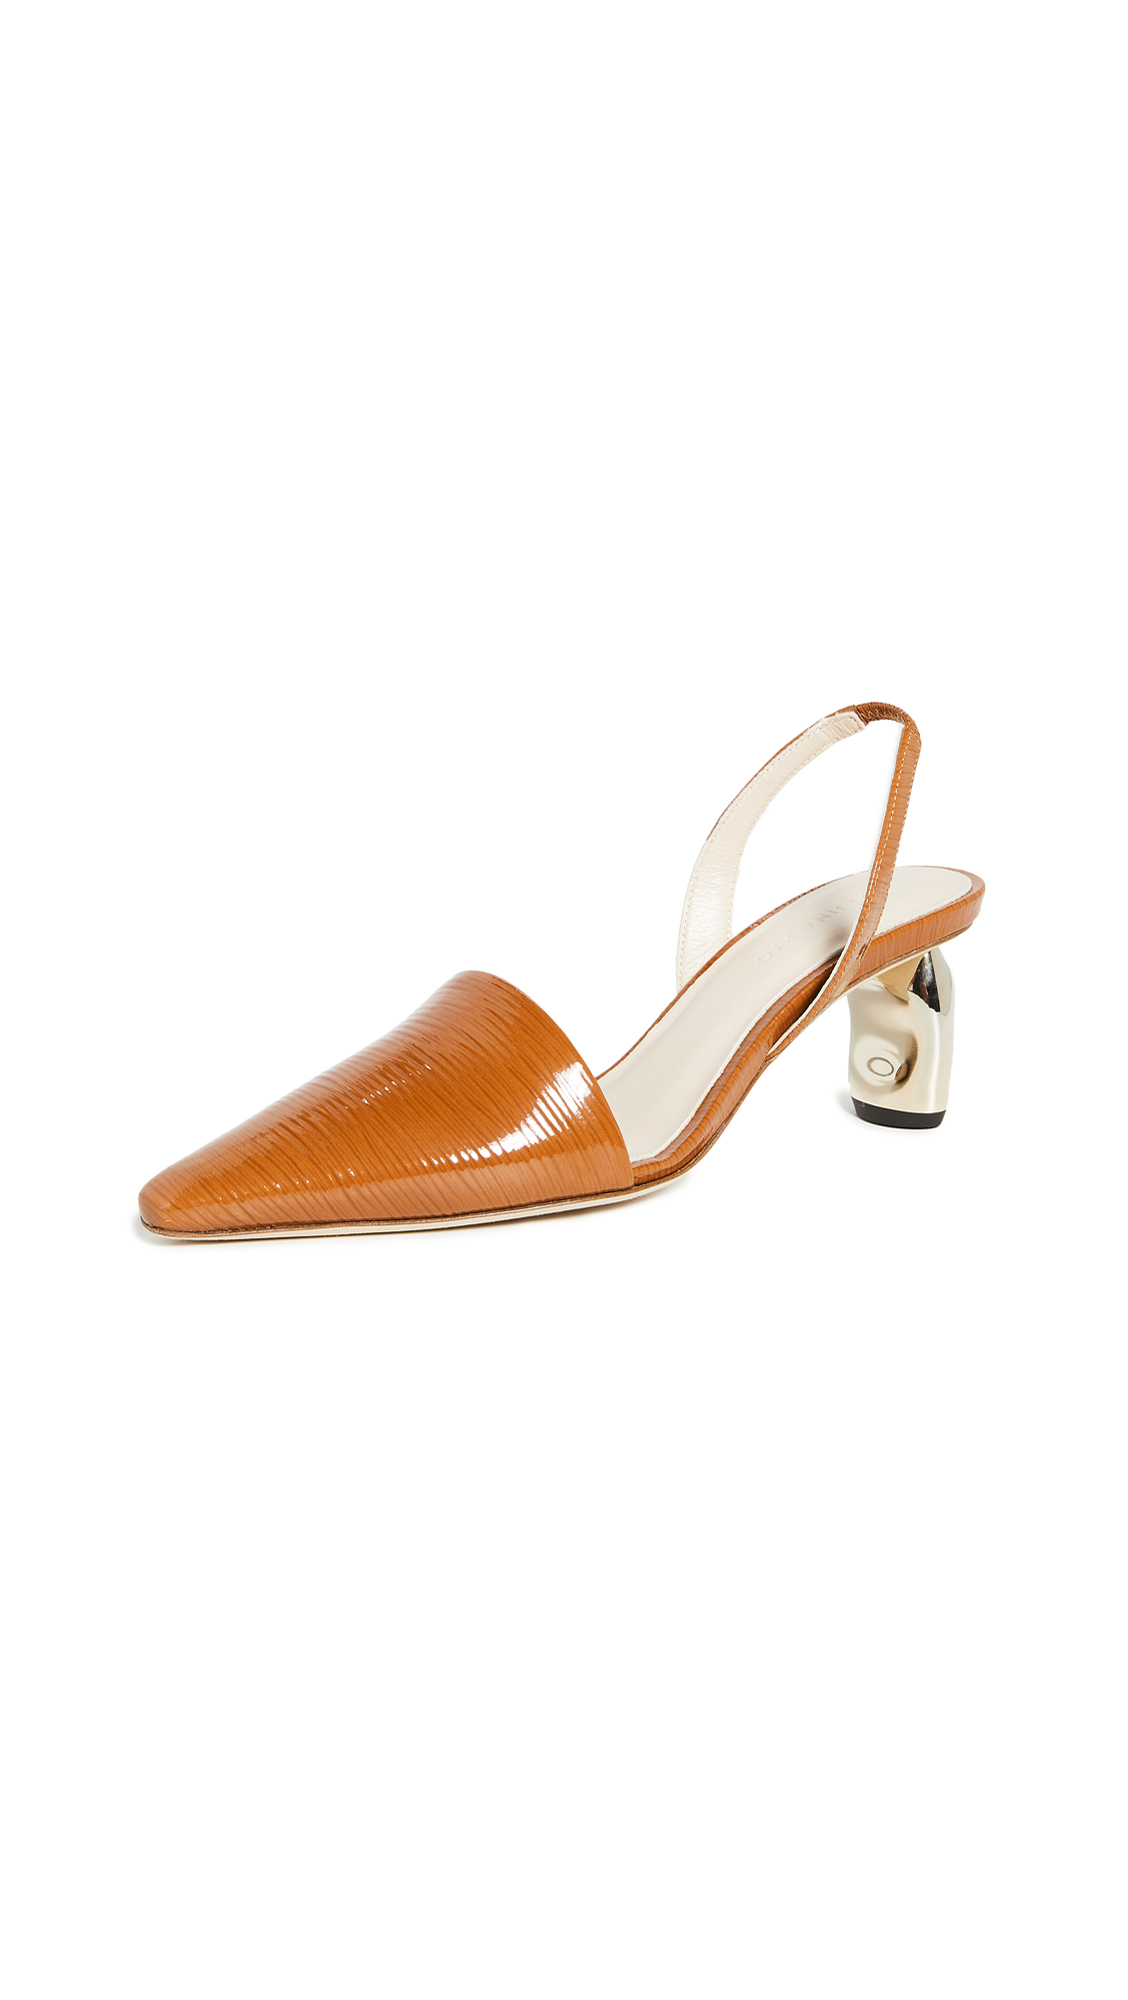 Rejina Pyo Conie Slingbacks 60mm – 40% Off Sale